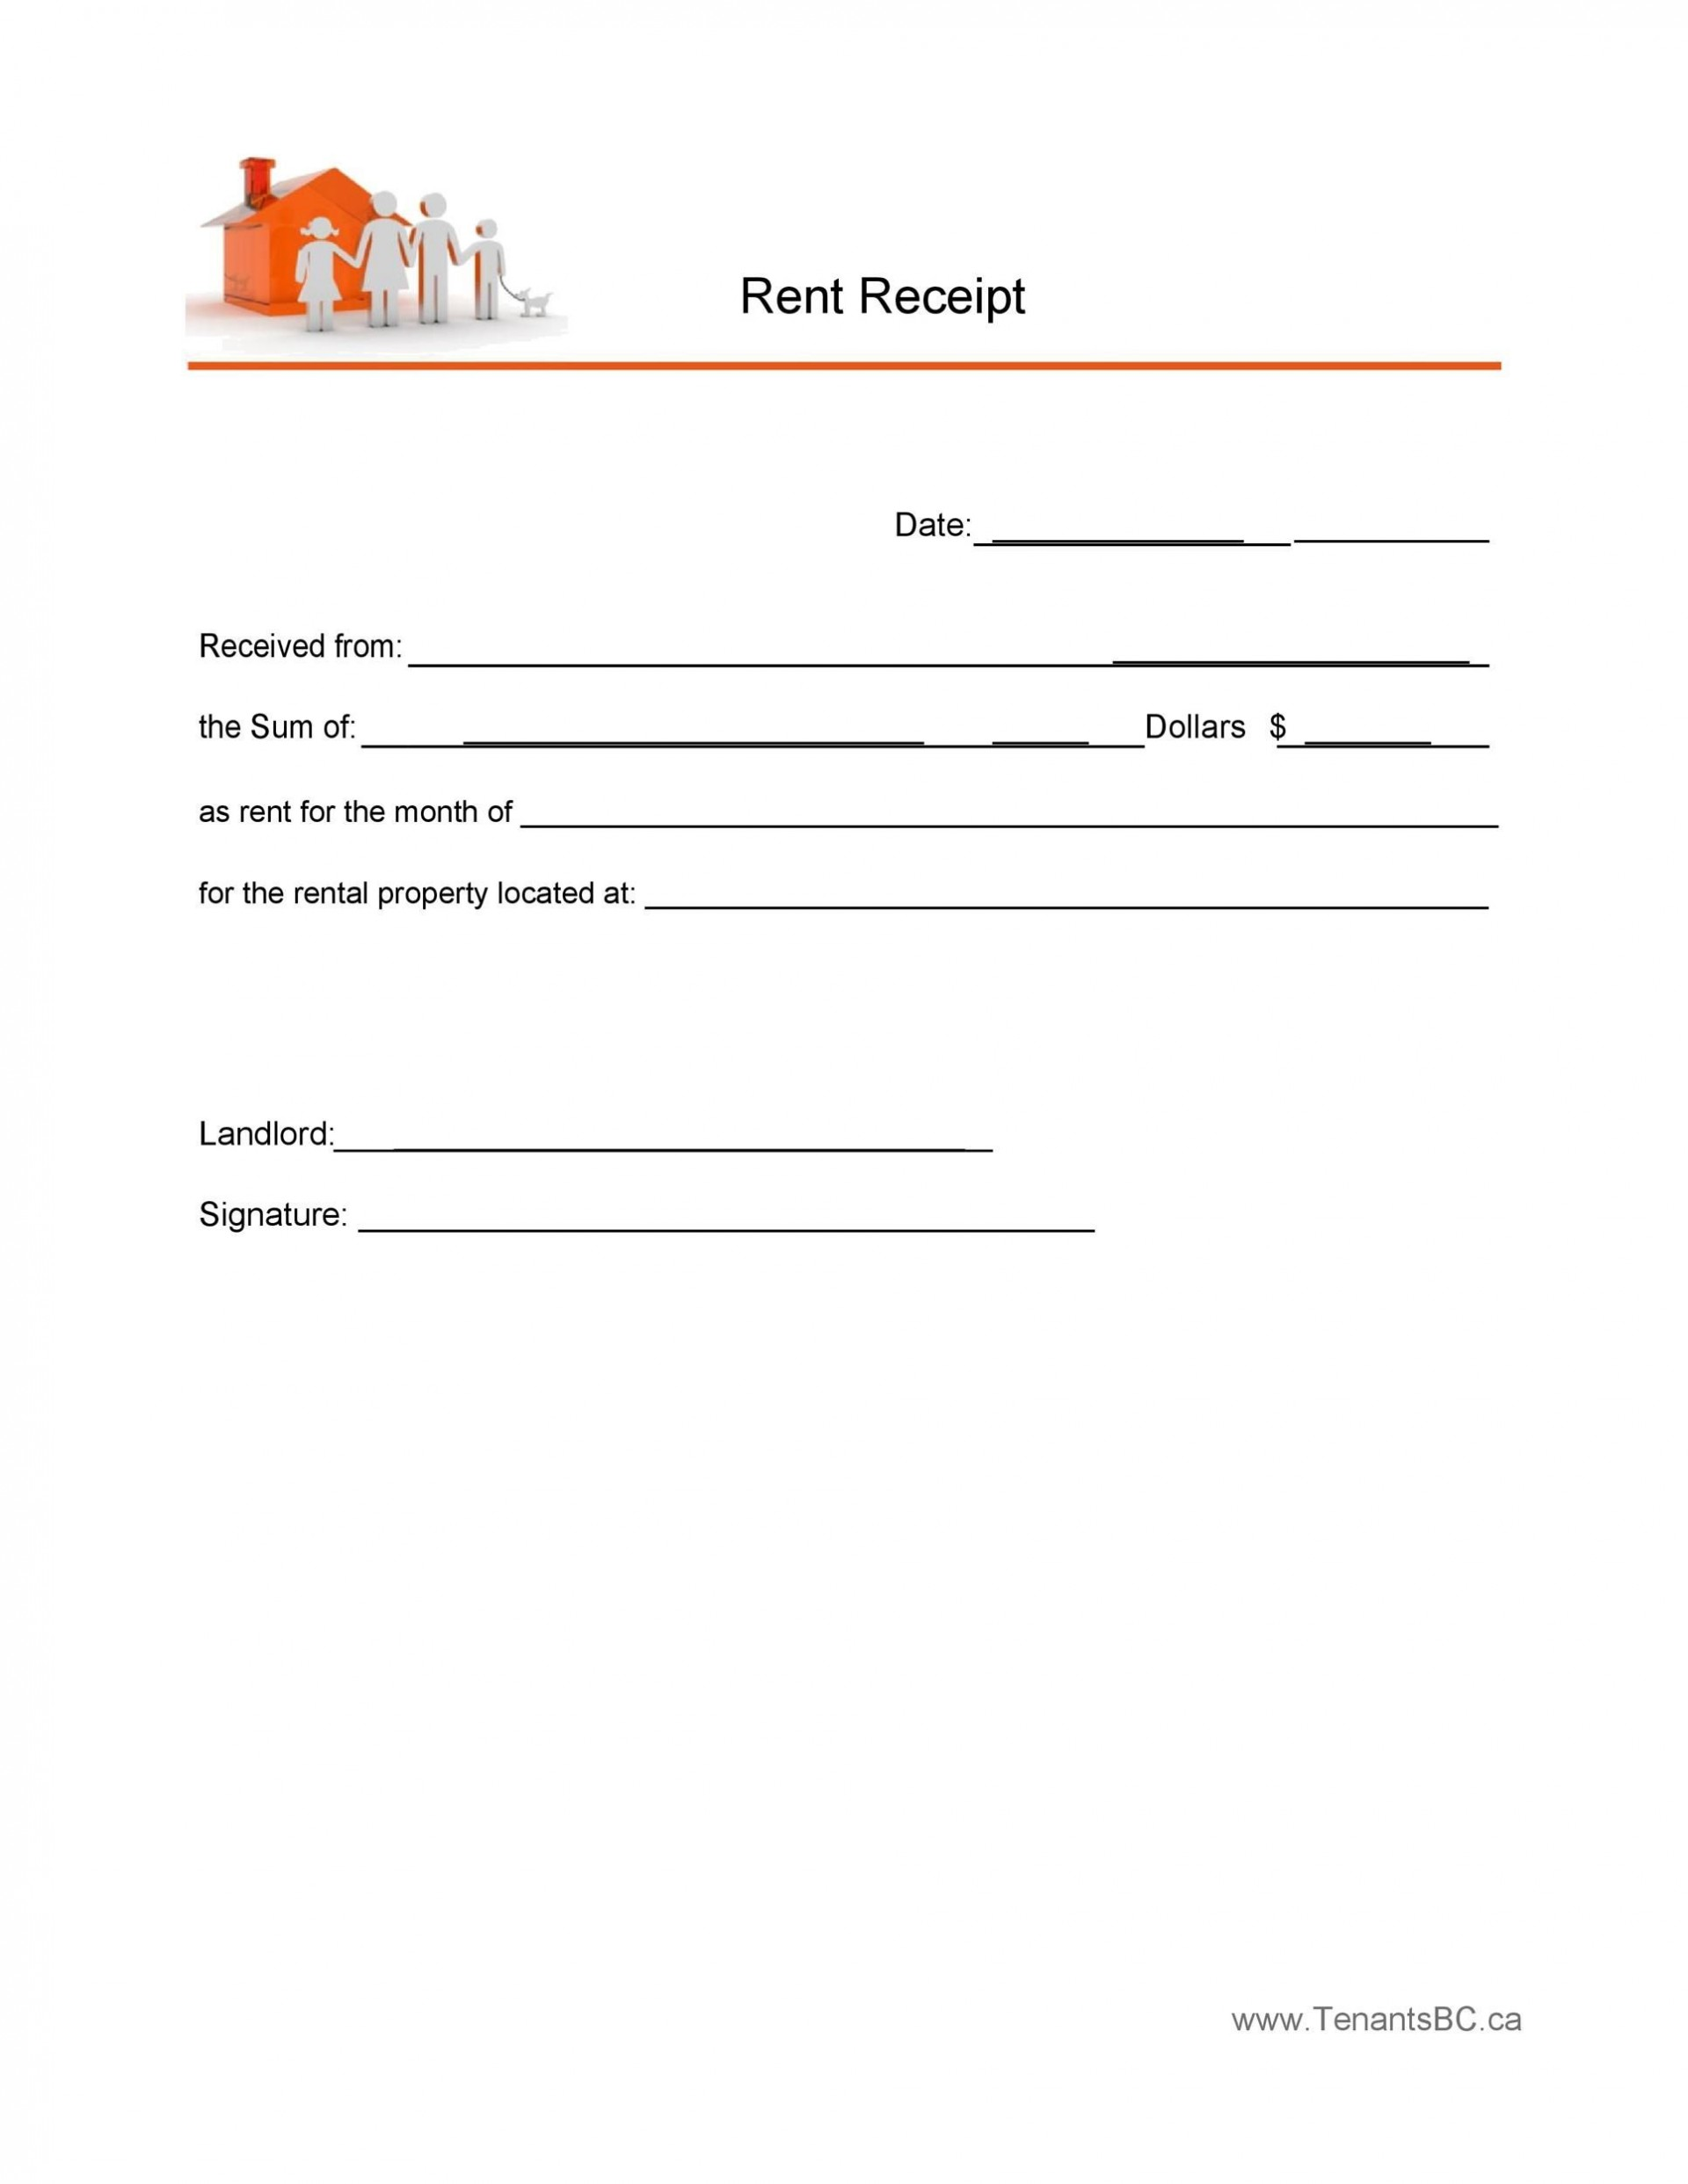 008 Surprising House Rent Receipt Sample Doc Highest Clarity  Template Word Document Free Download Format For Income Tax1920